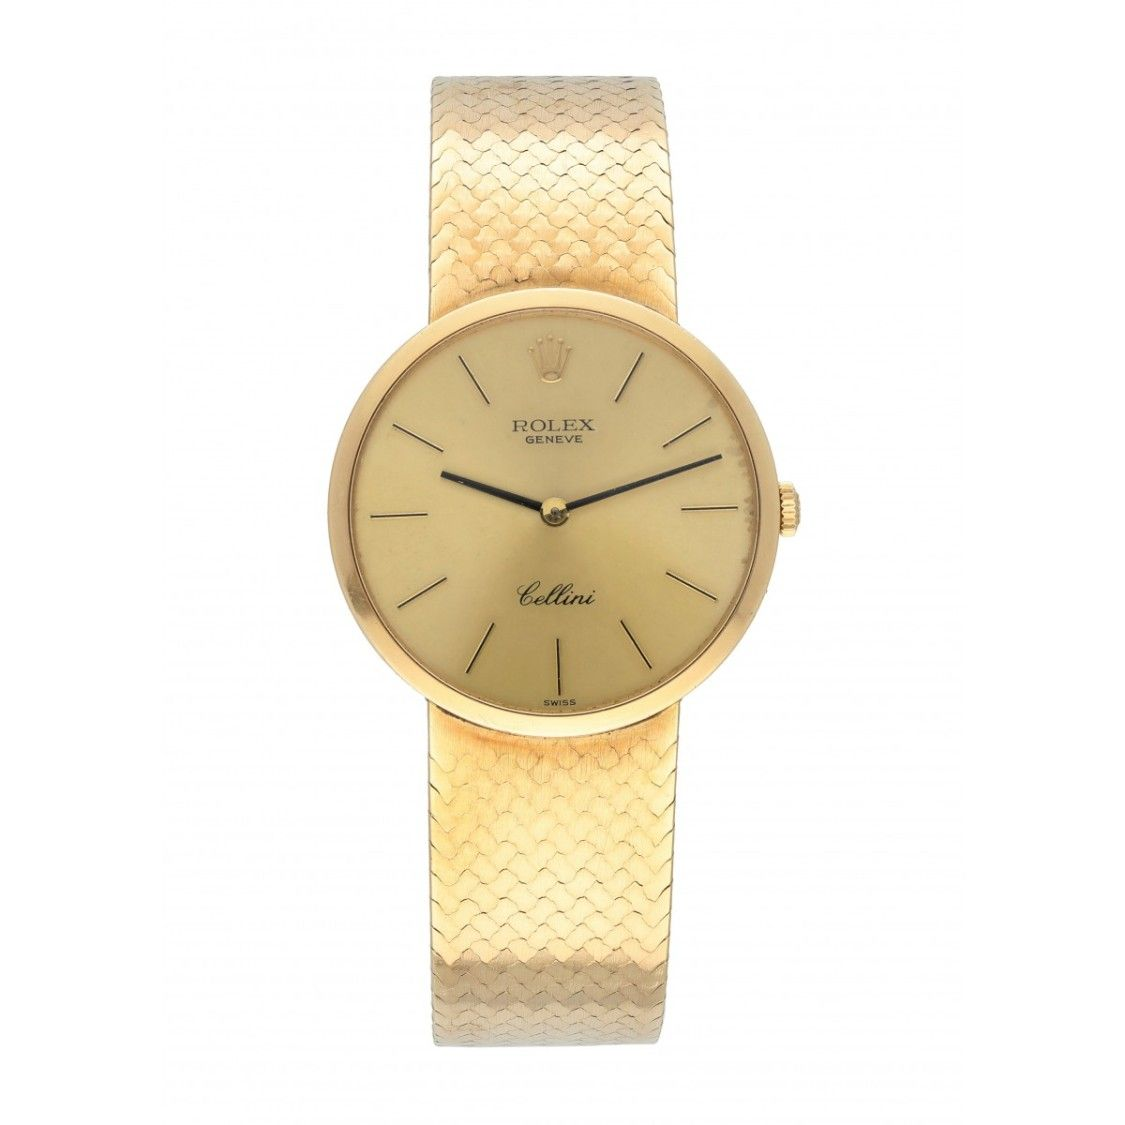 Rolex CELLINI 18K YELLOW GOLD LADIES WATCH